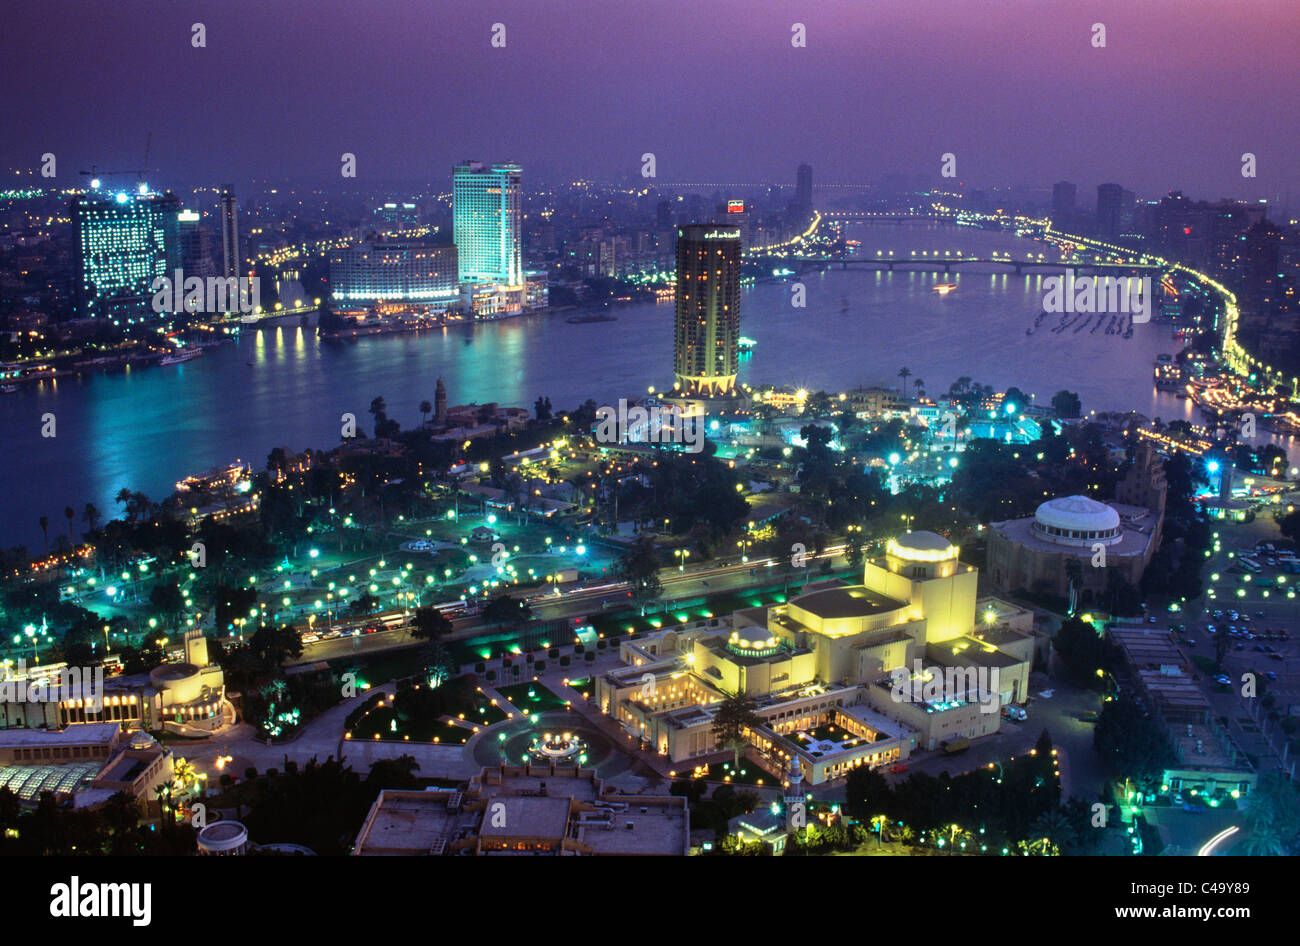 Egypt, Cairo, City by Nile river with Opera House in foreground at dusk - Stock Image